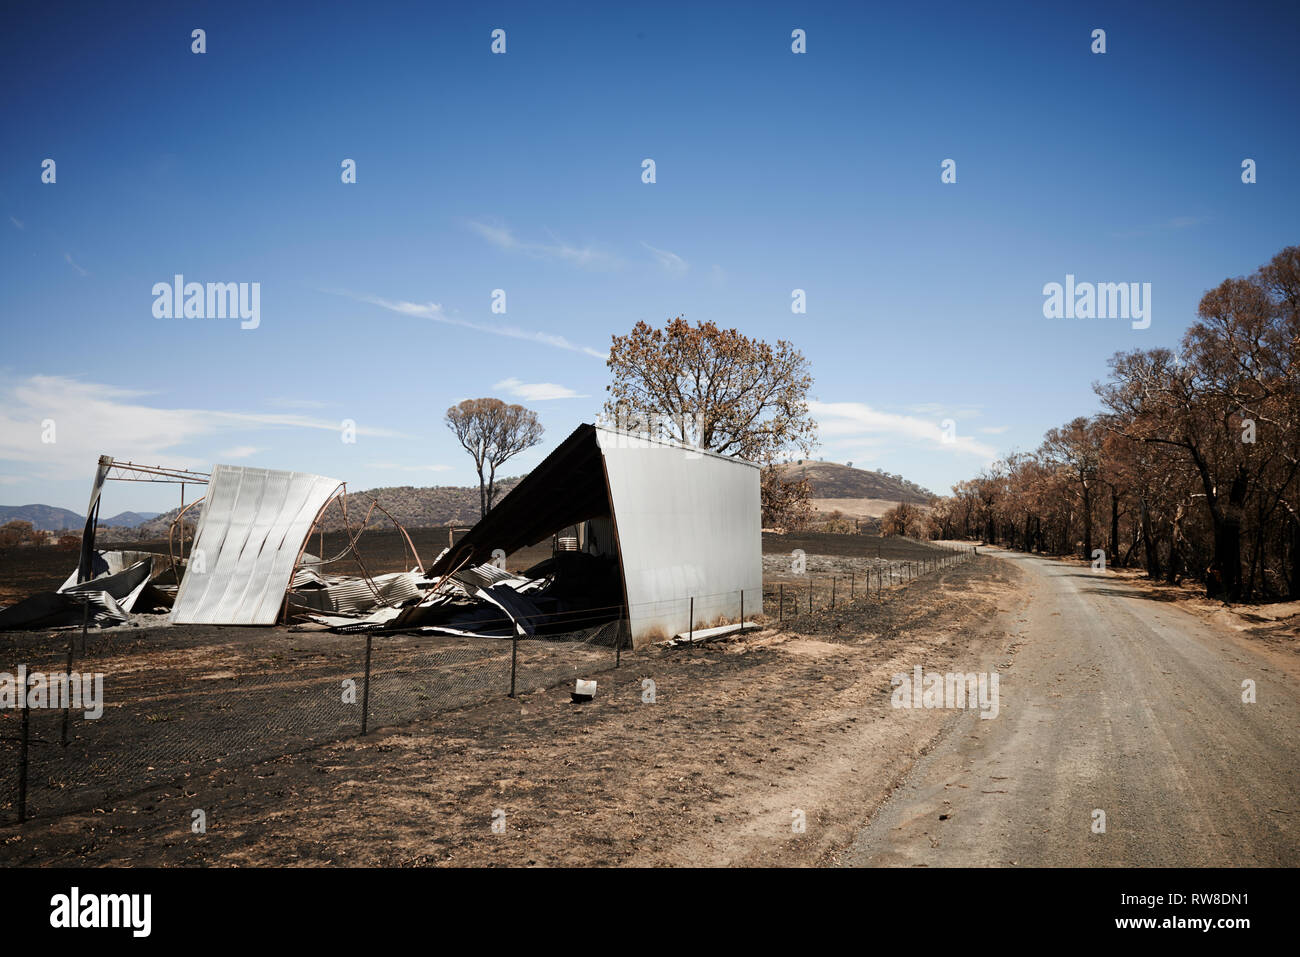 The aftermath and destruction left behind from bushfires in Bogolara Road, New South Wales, Australia. Stock Photo